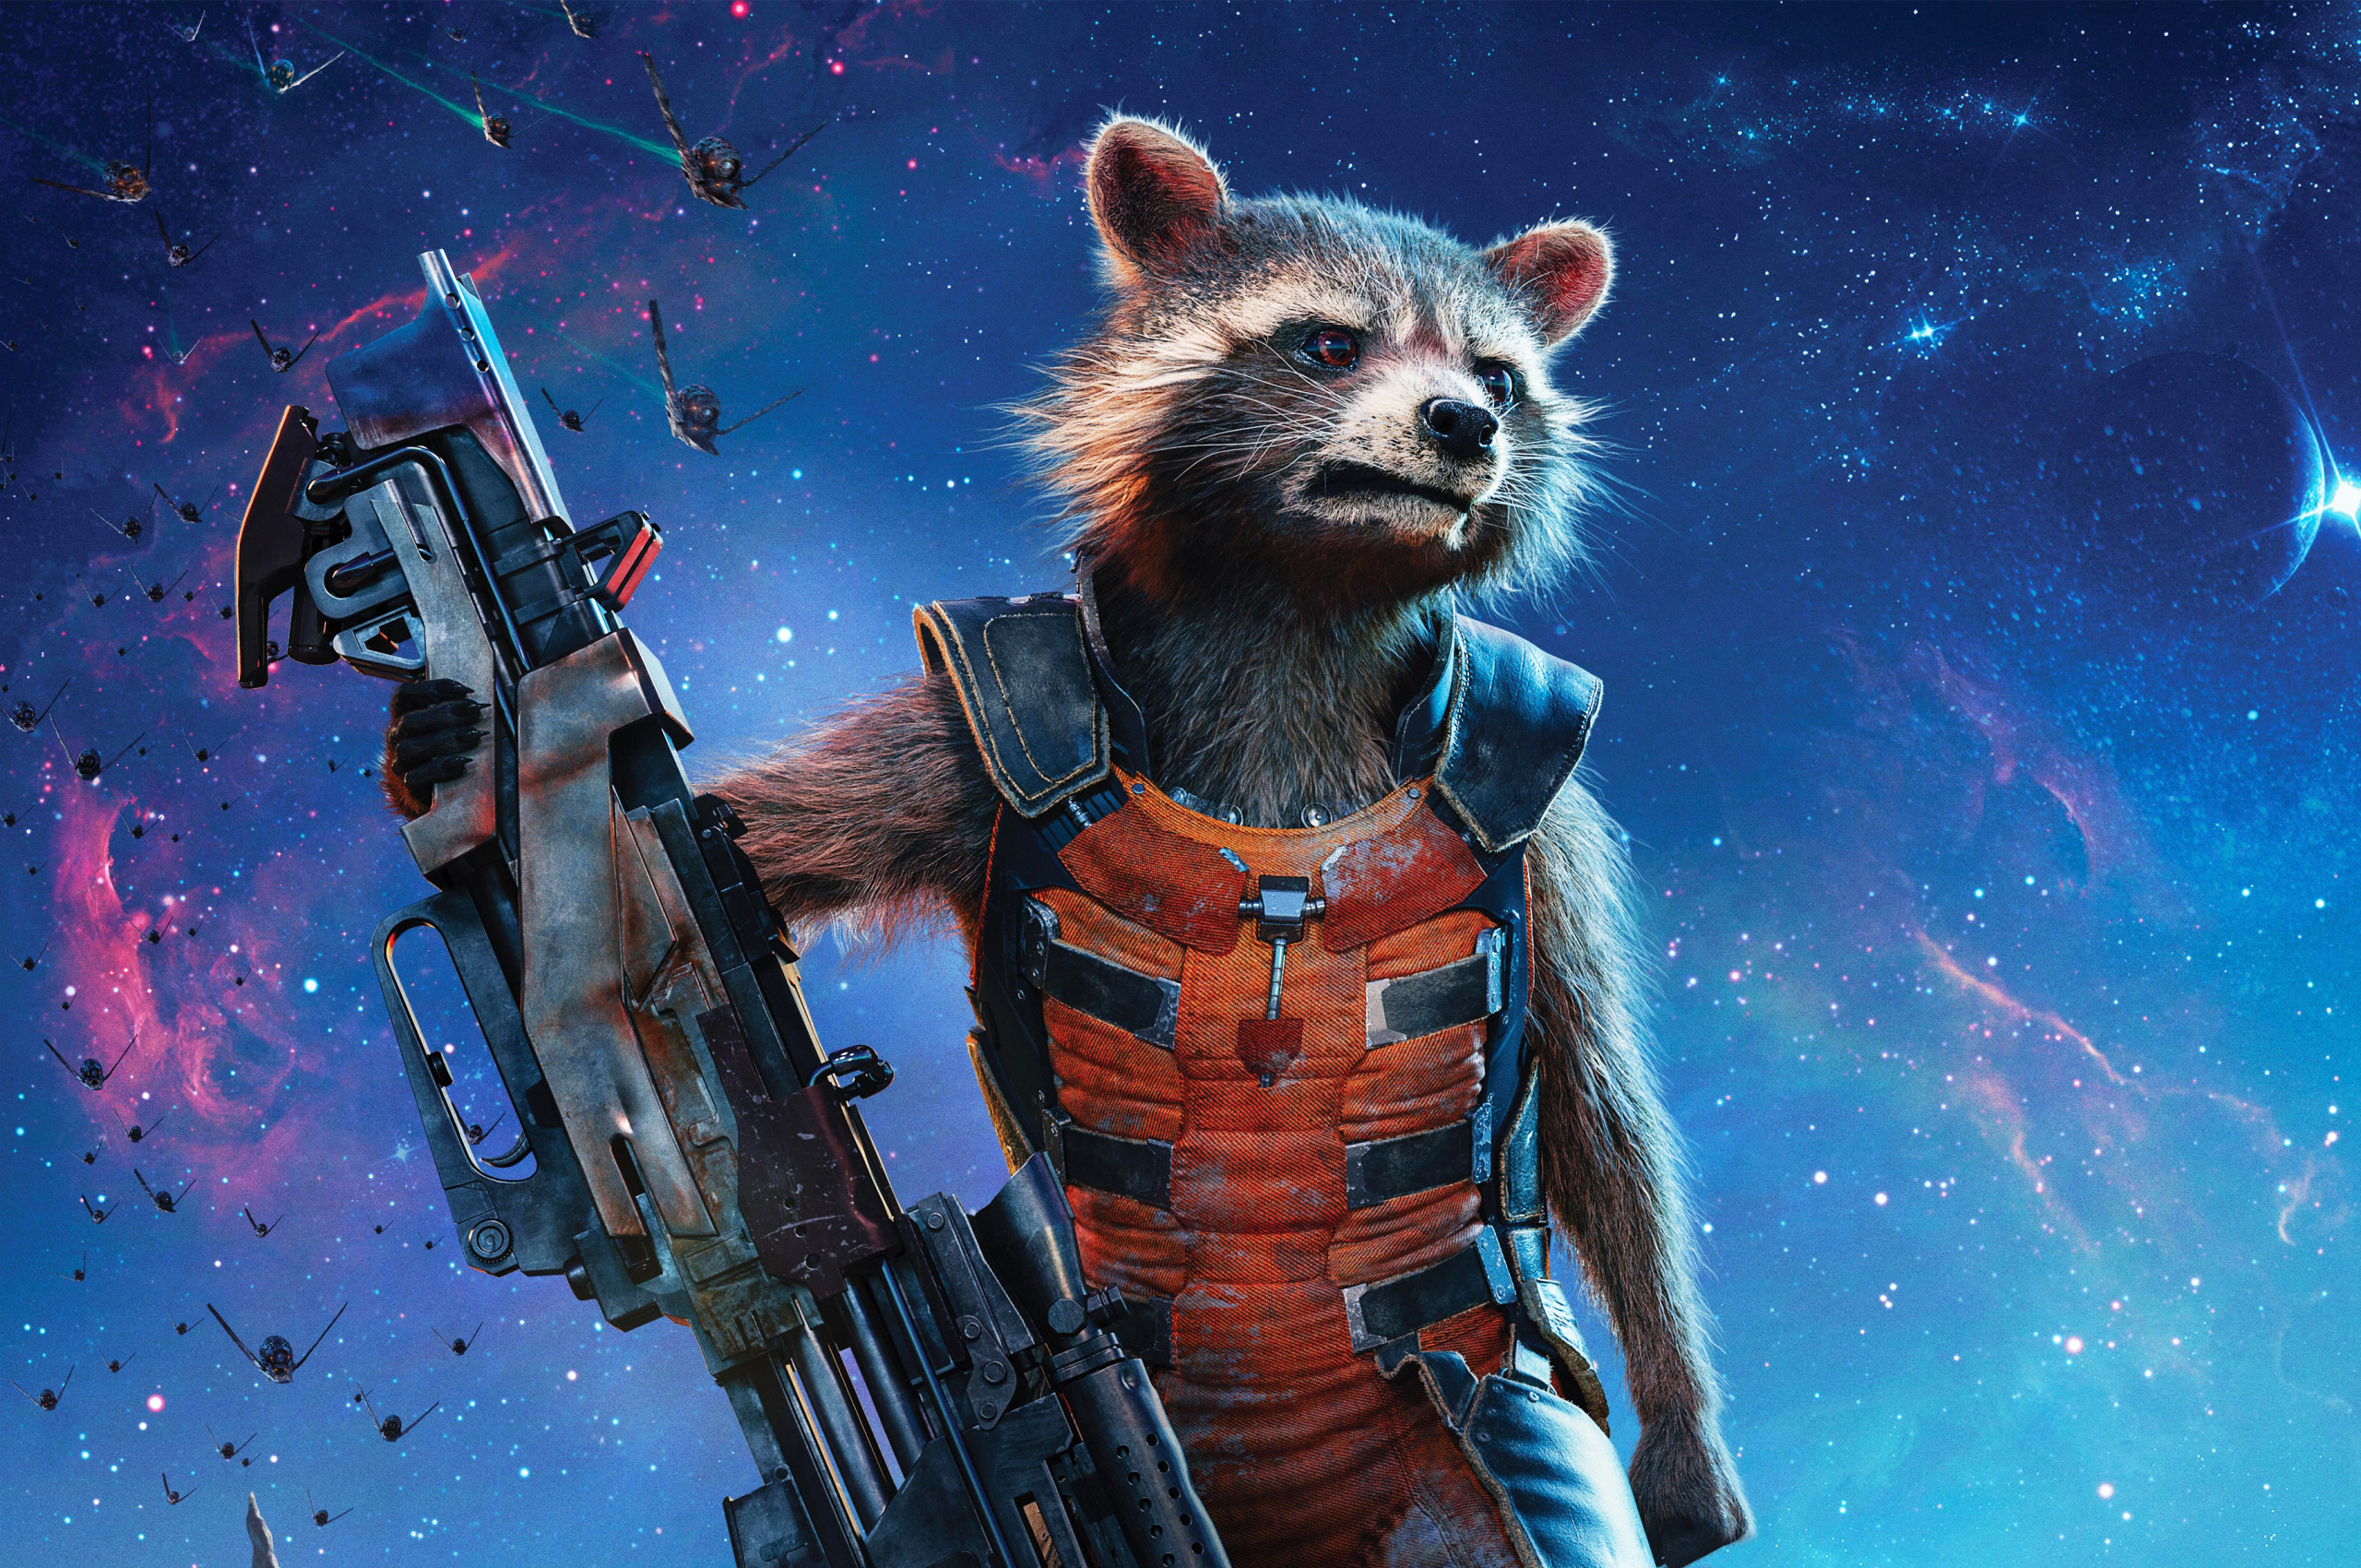 Free Download Rocket Raccoon Guardians Of The Galaxy Vol 2 Hd